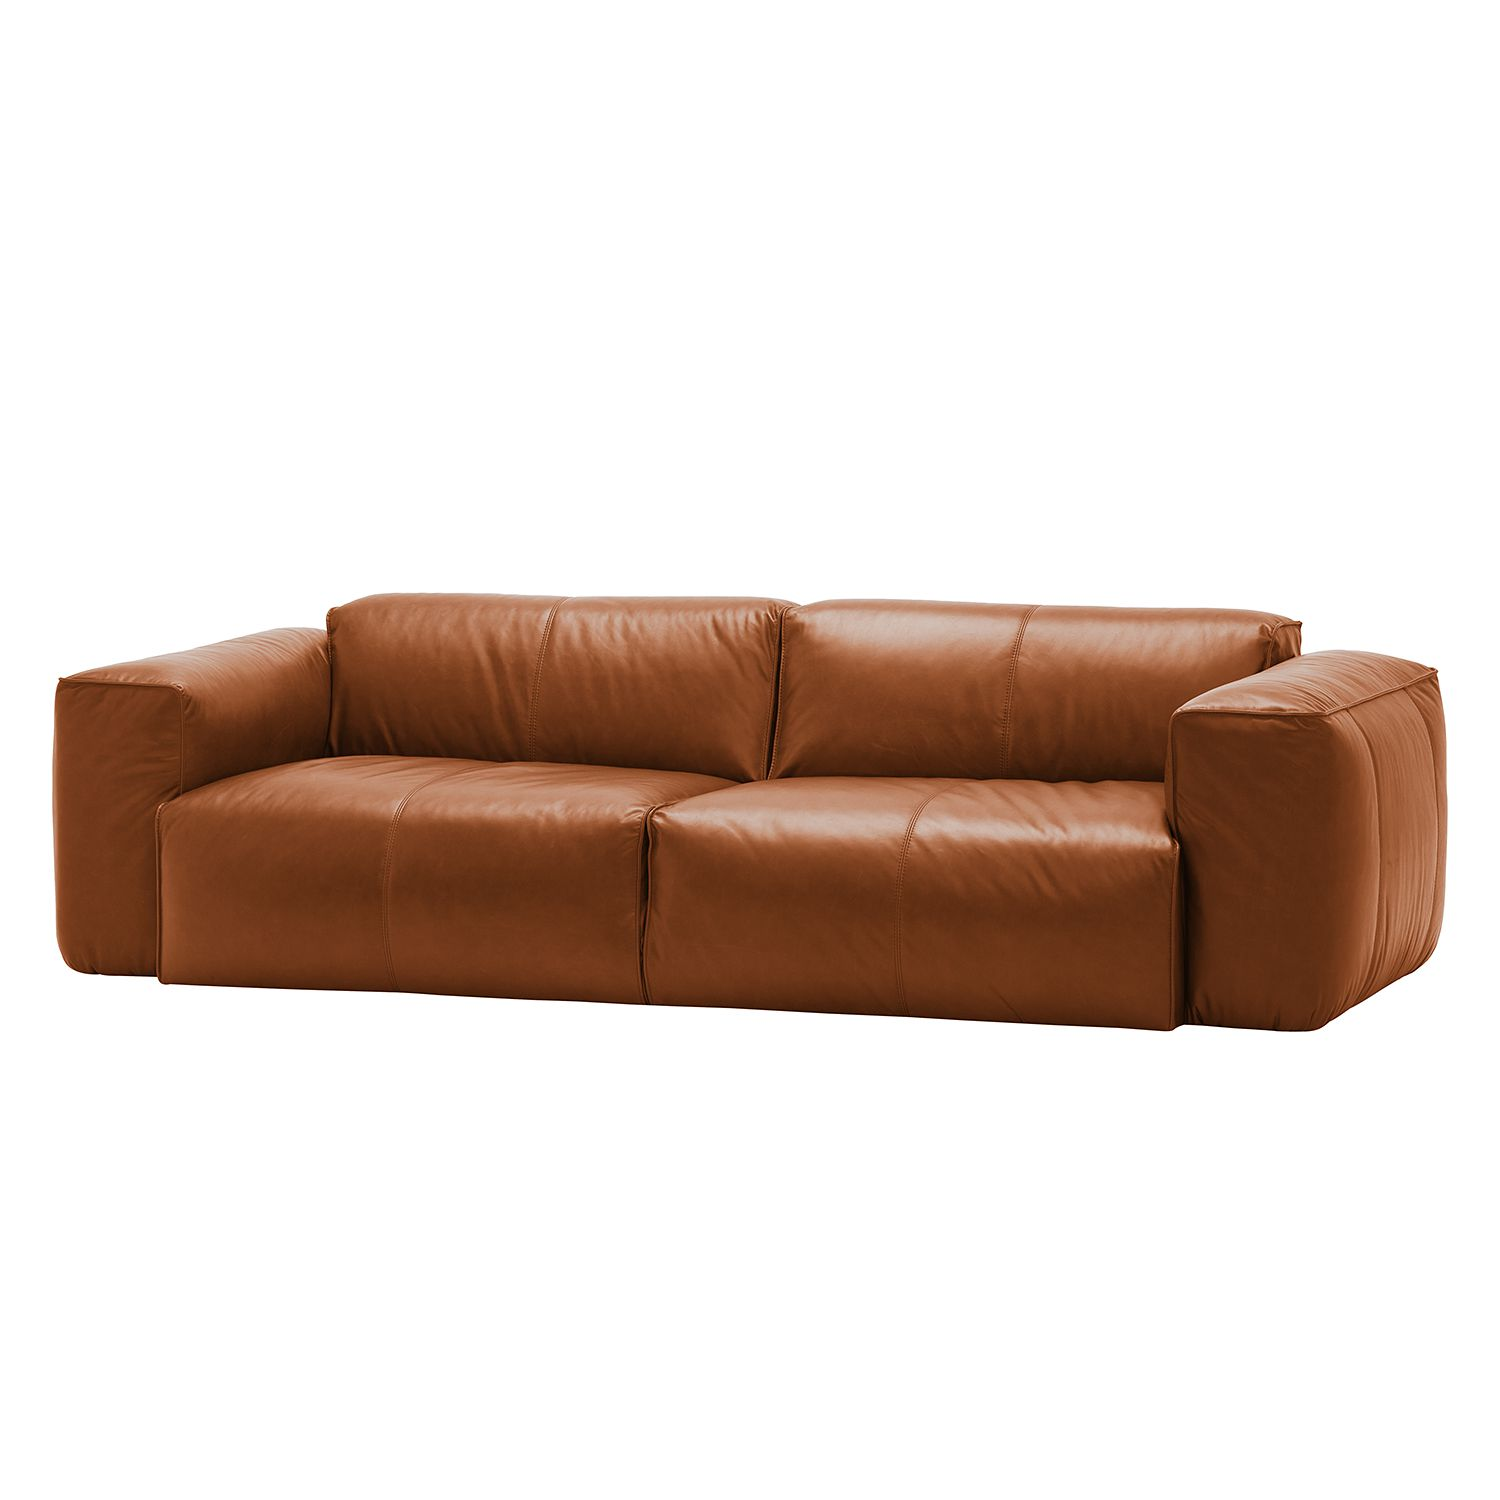 Ledercouch braun modern  Sofa Hudson II (3-Sitzer) Echtleder - Fashion For Home